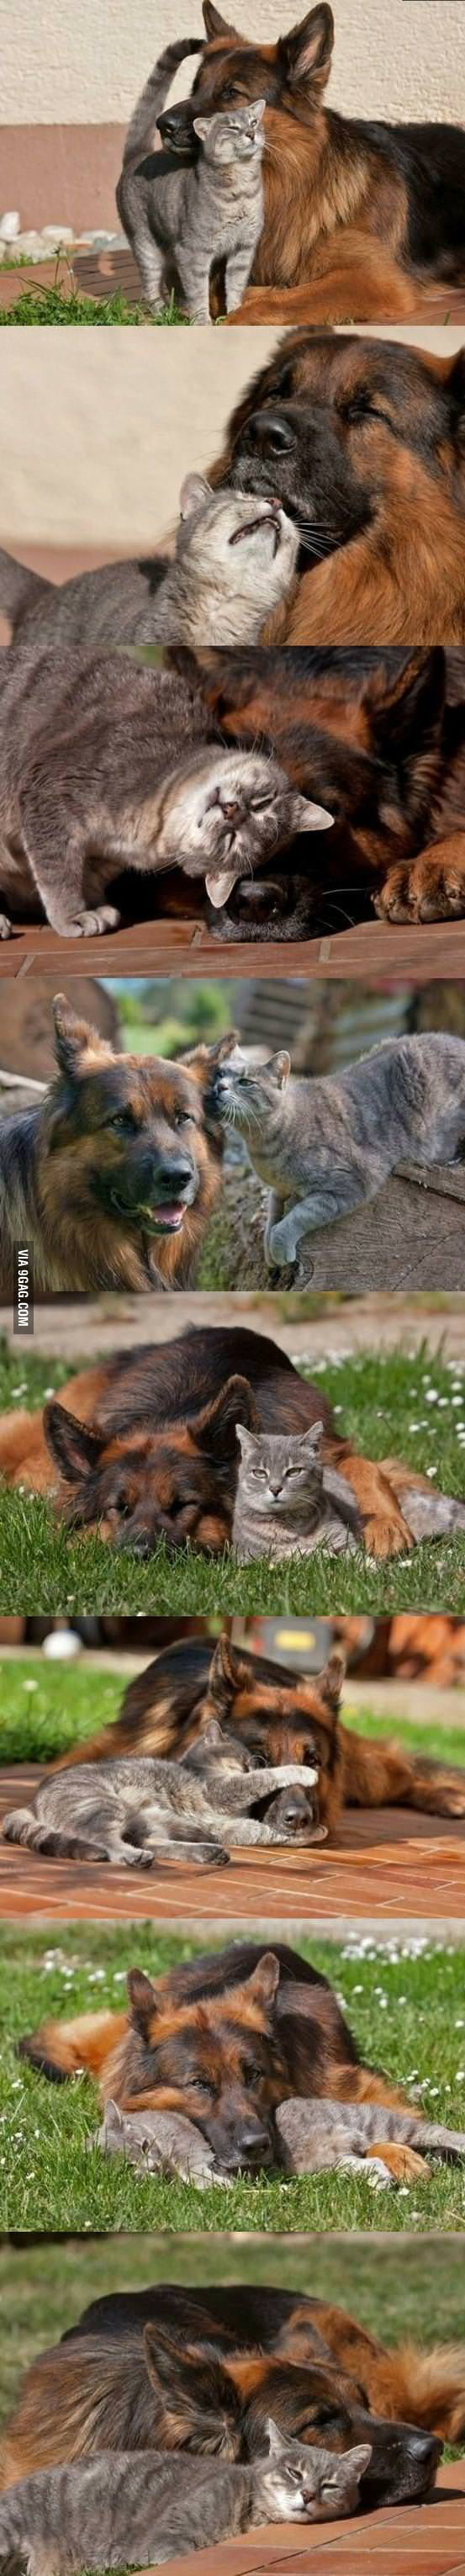 The best buddies.